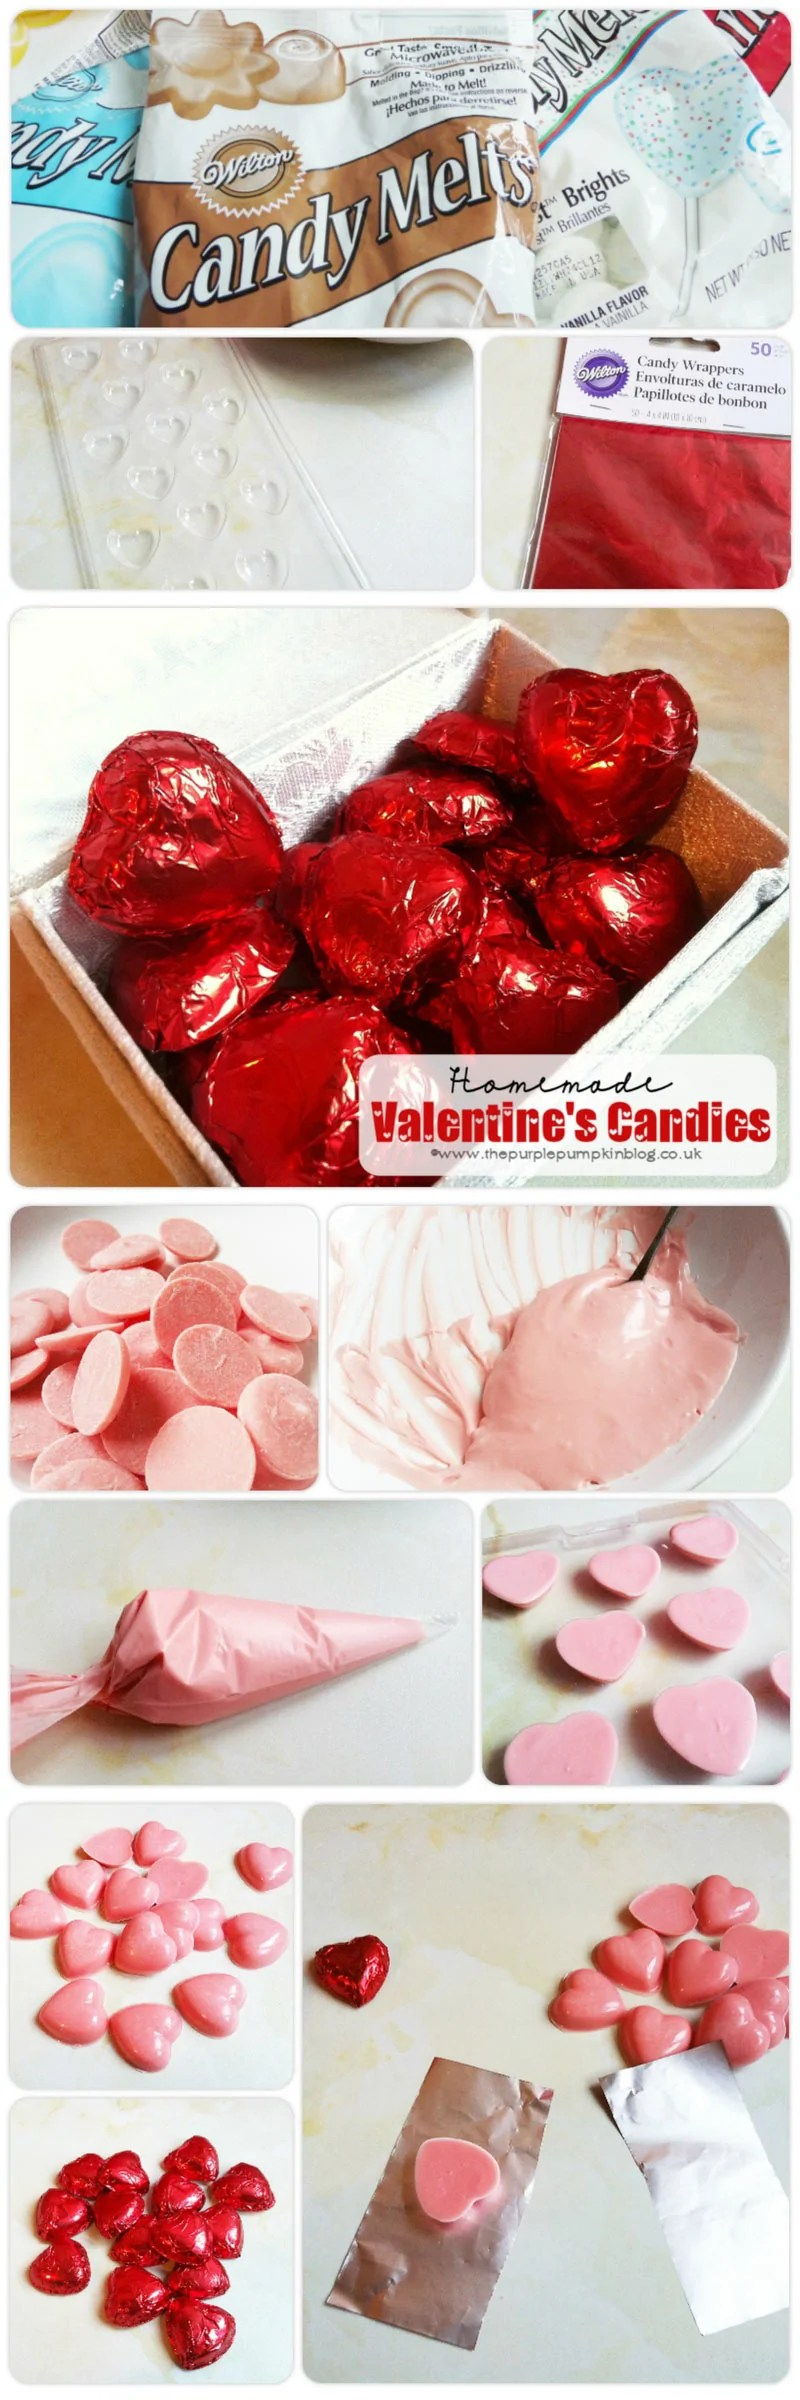 Homemade Valentines Candies - these candies are really quick and easy to make, and a sweet last minute gift for your Valentine!